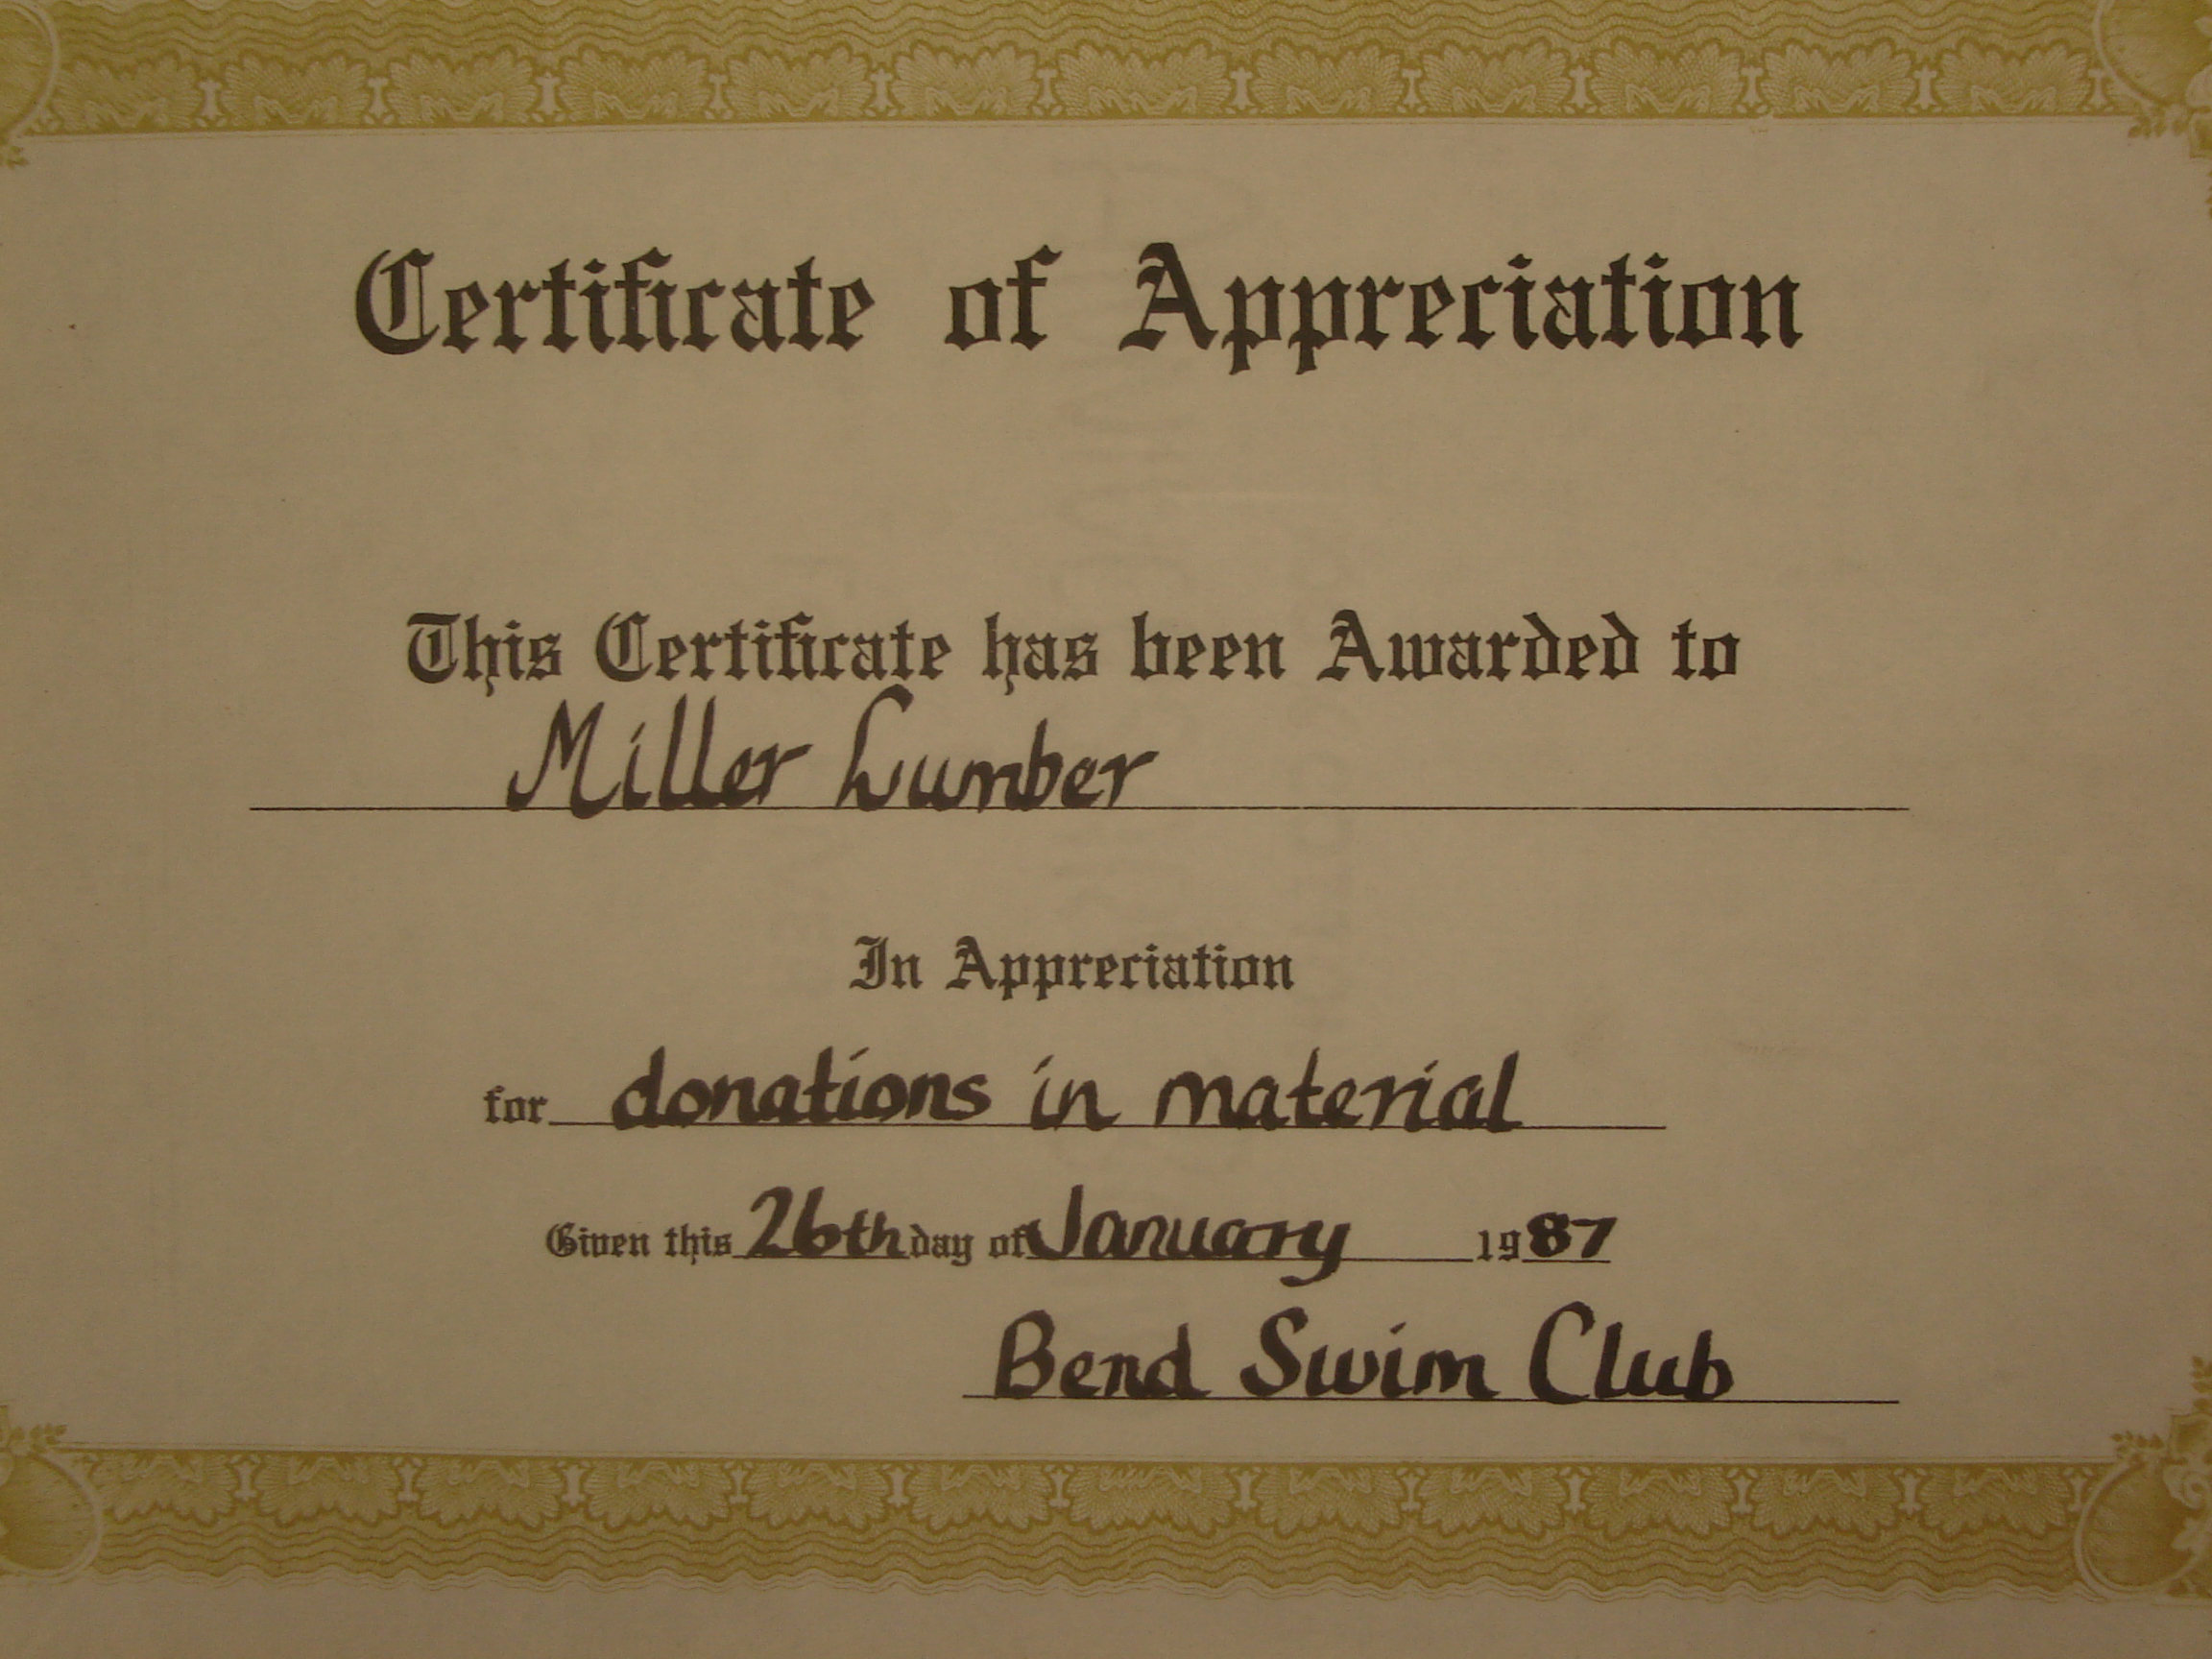 Miller Lumber has been involved in local sports teams for decades including their 1987 donations to the Bend Swim Club.